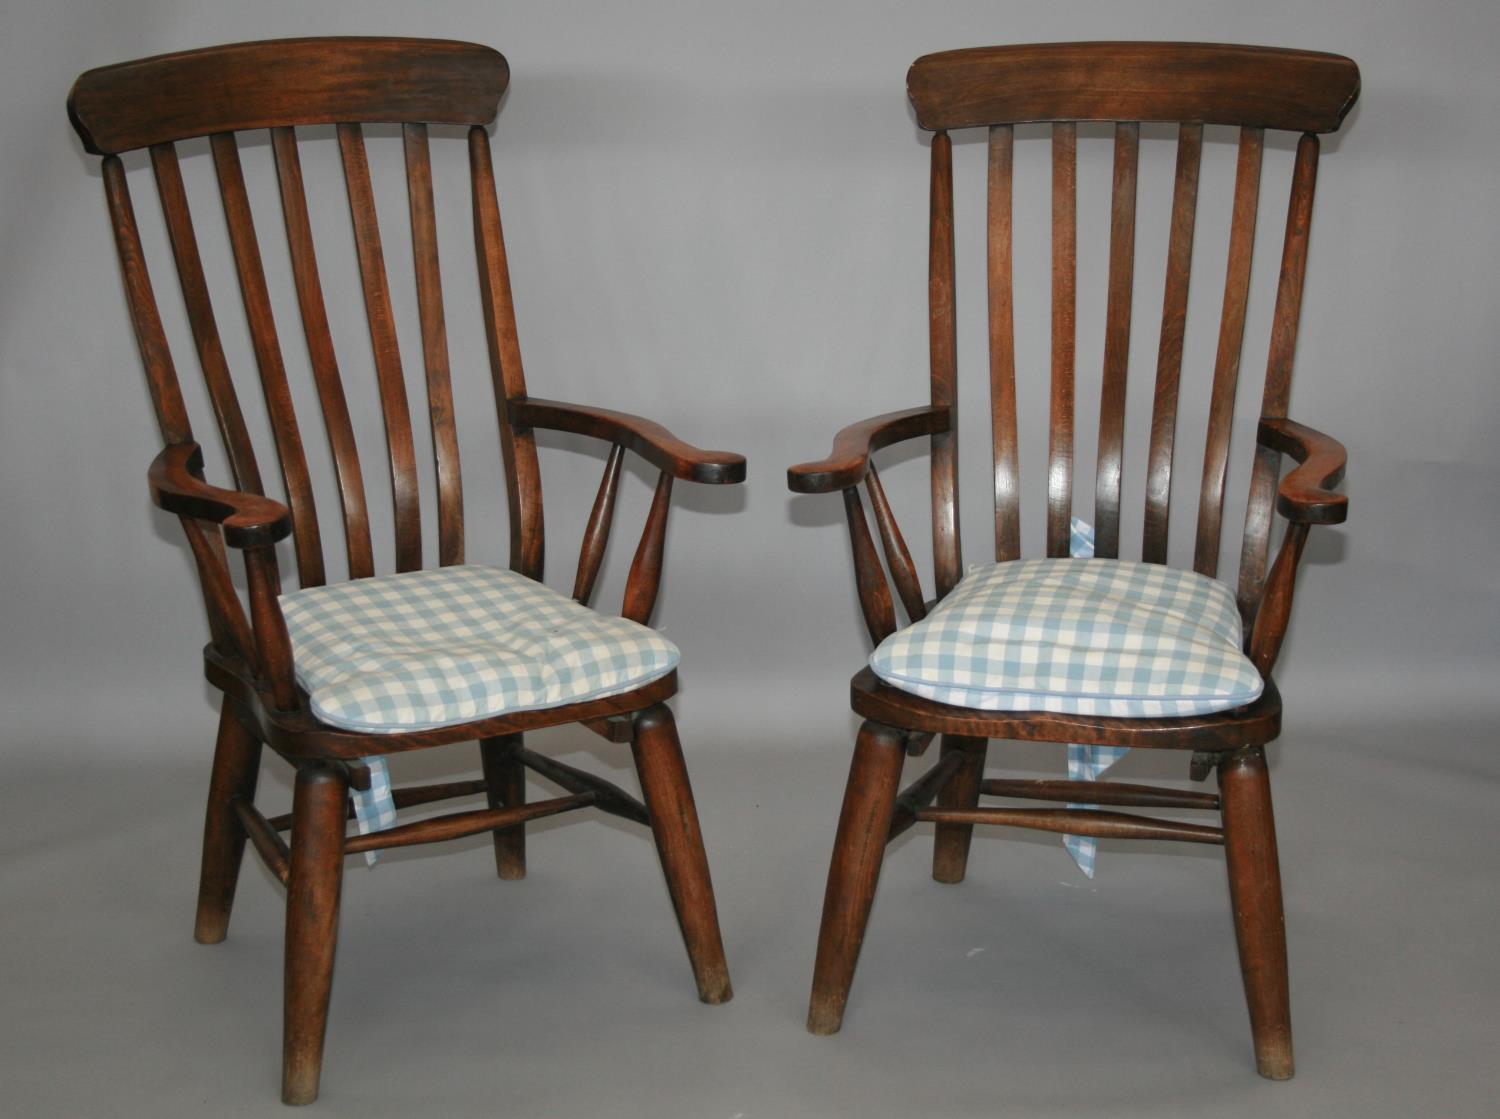 Pair of high back fork design kitchen chairs 65 W x 115 H x 60 D